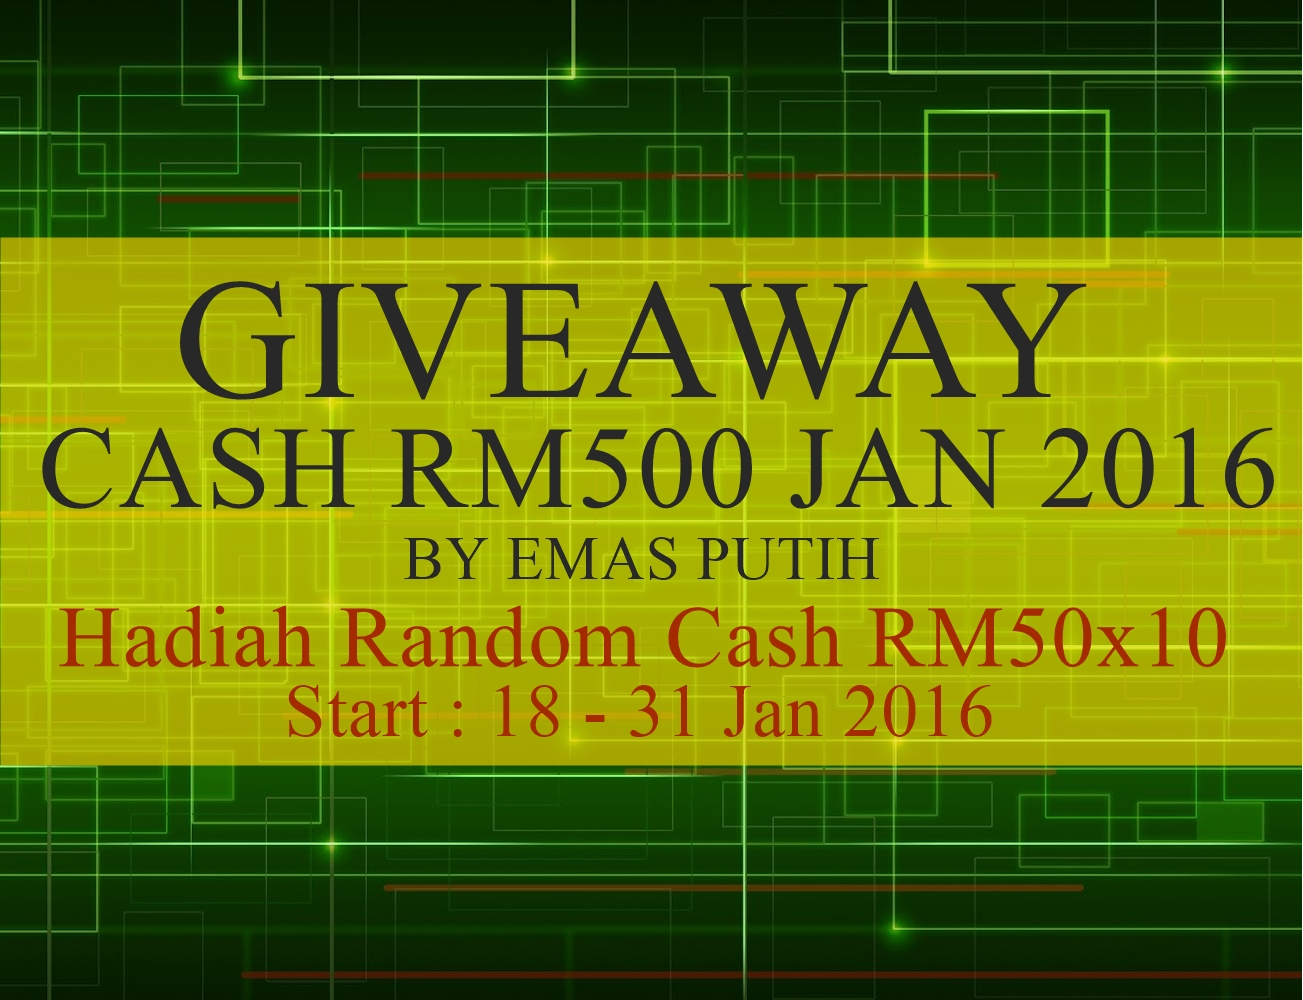 Giveaway Cash RM500 Jan 2016 by Emas Putih